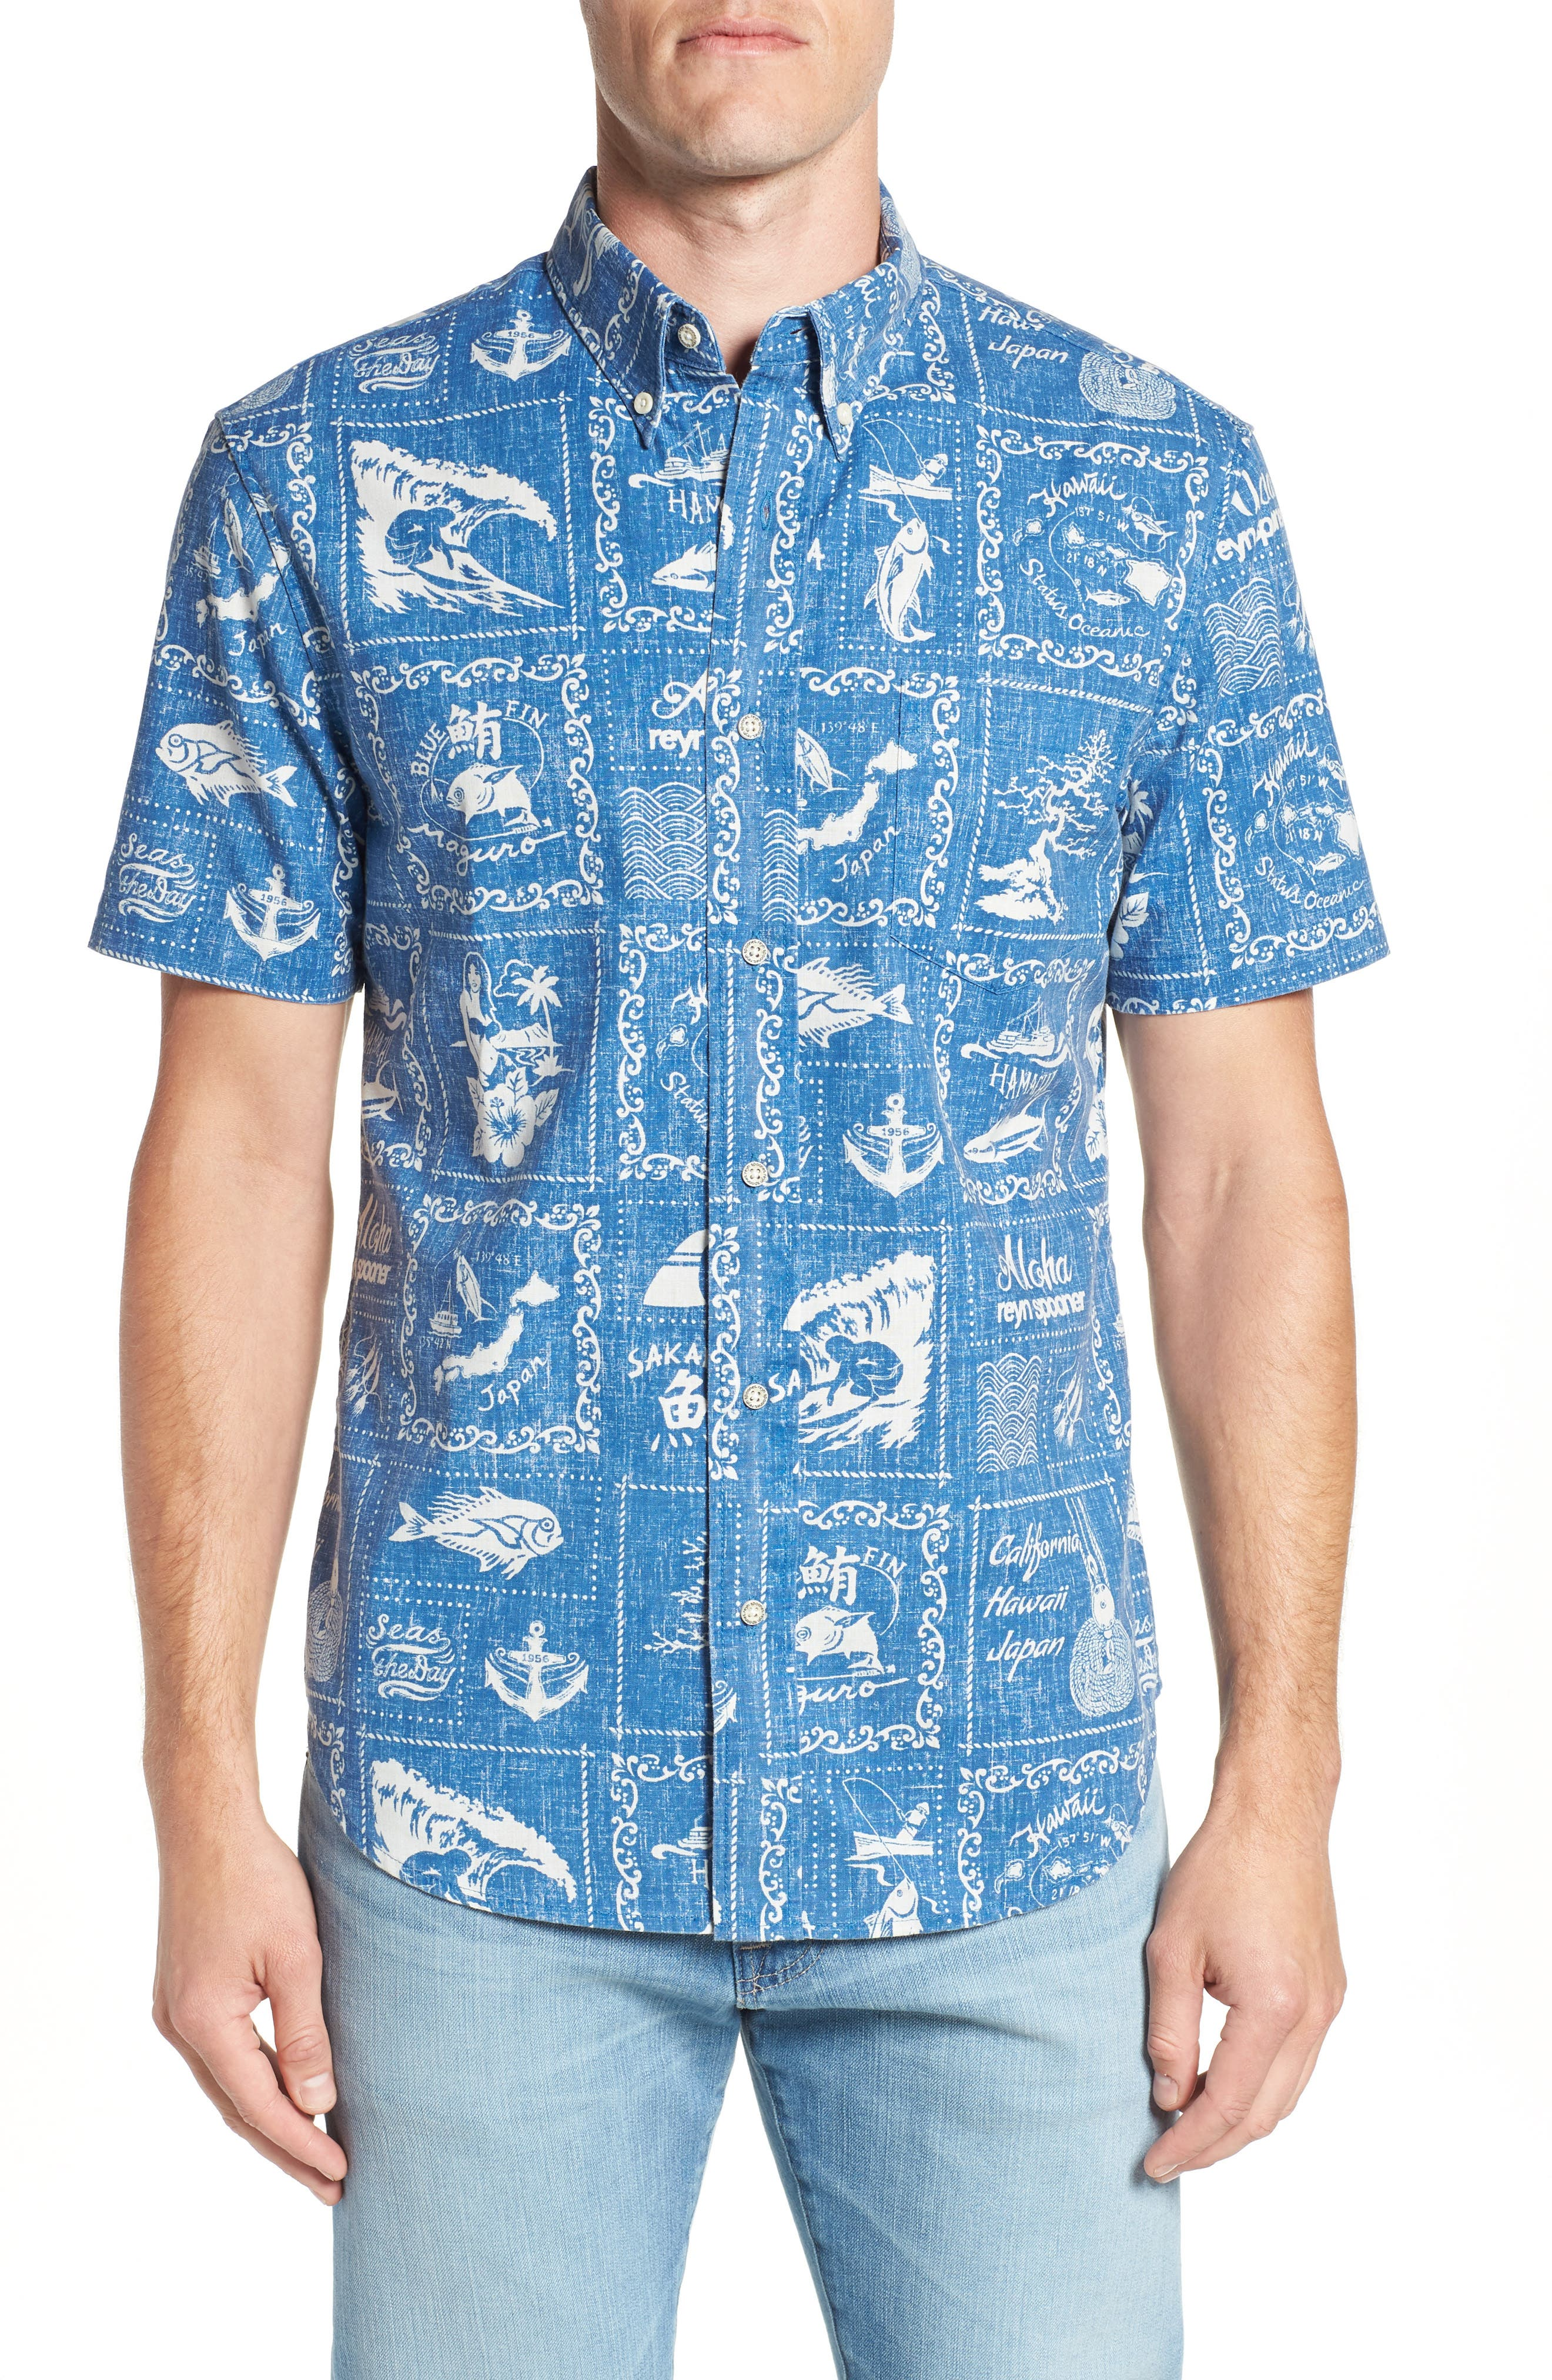 Stories from the East Regular Fit Sport Shirt,                             Main thumbnail 1, color,                             MARINE